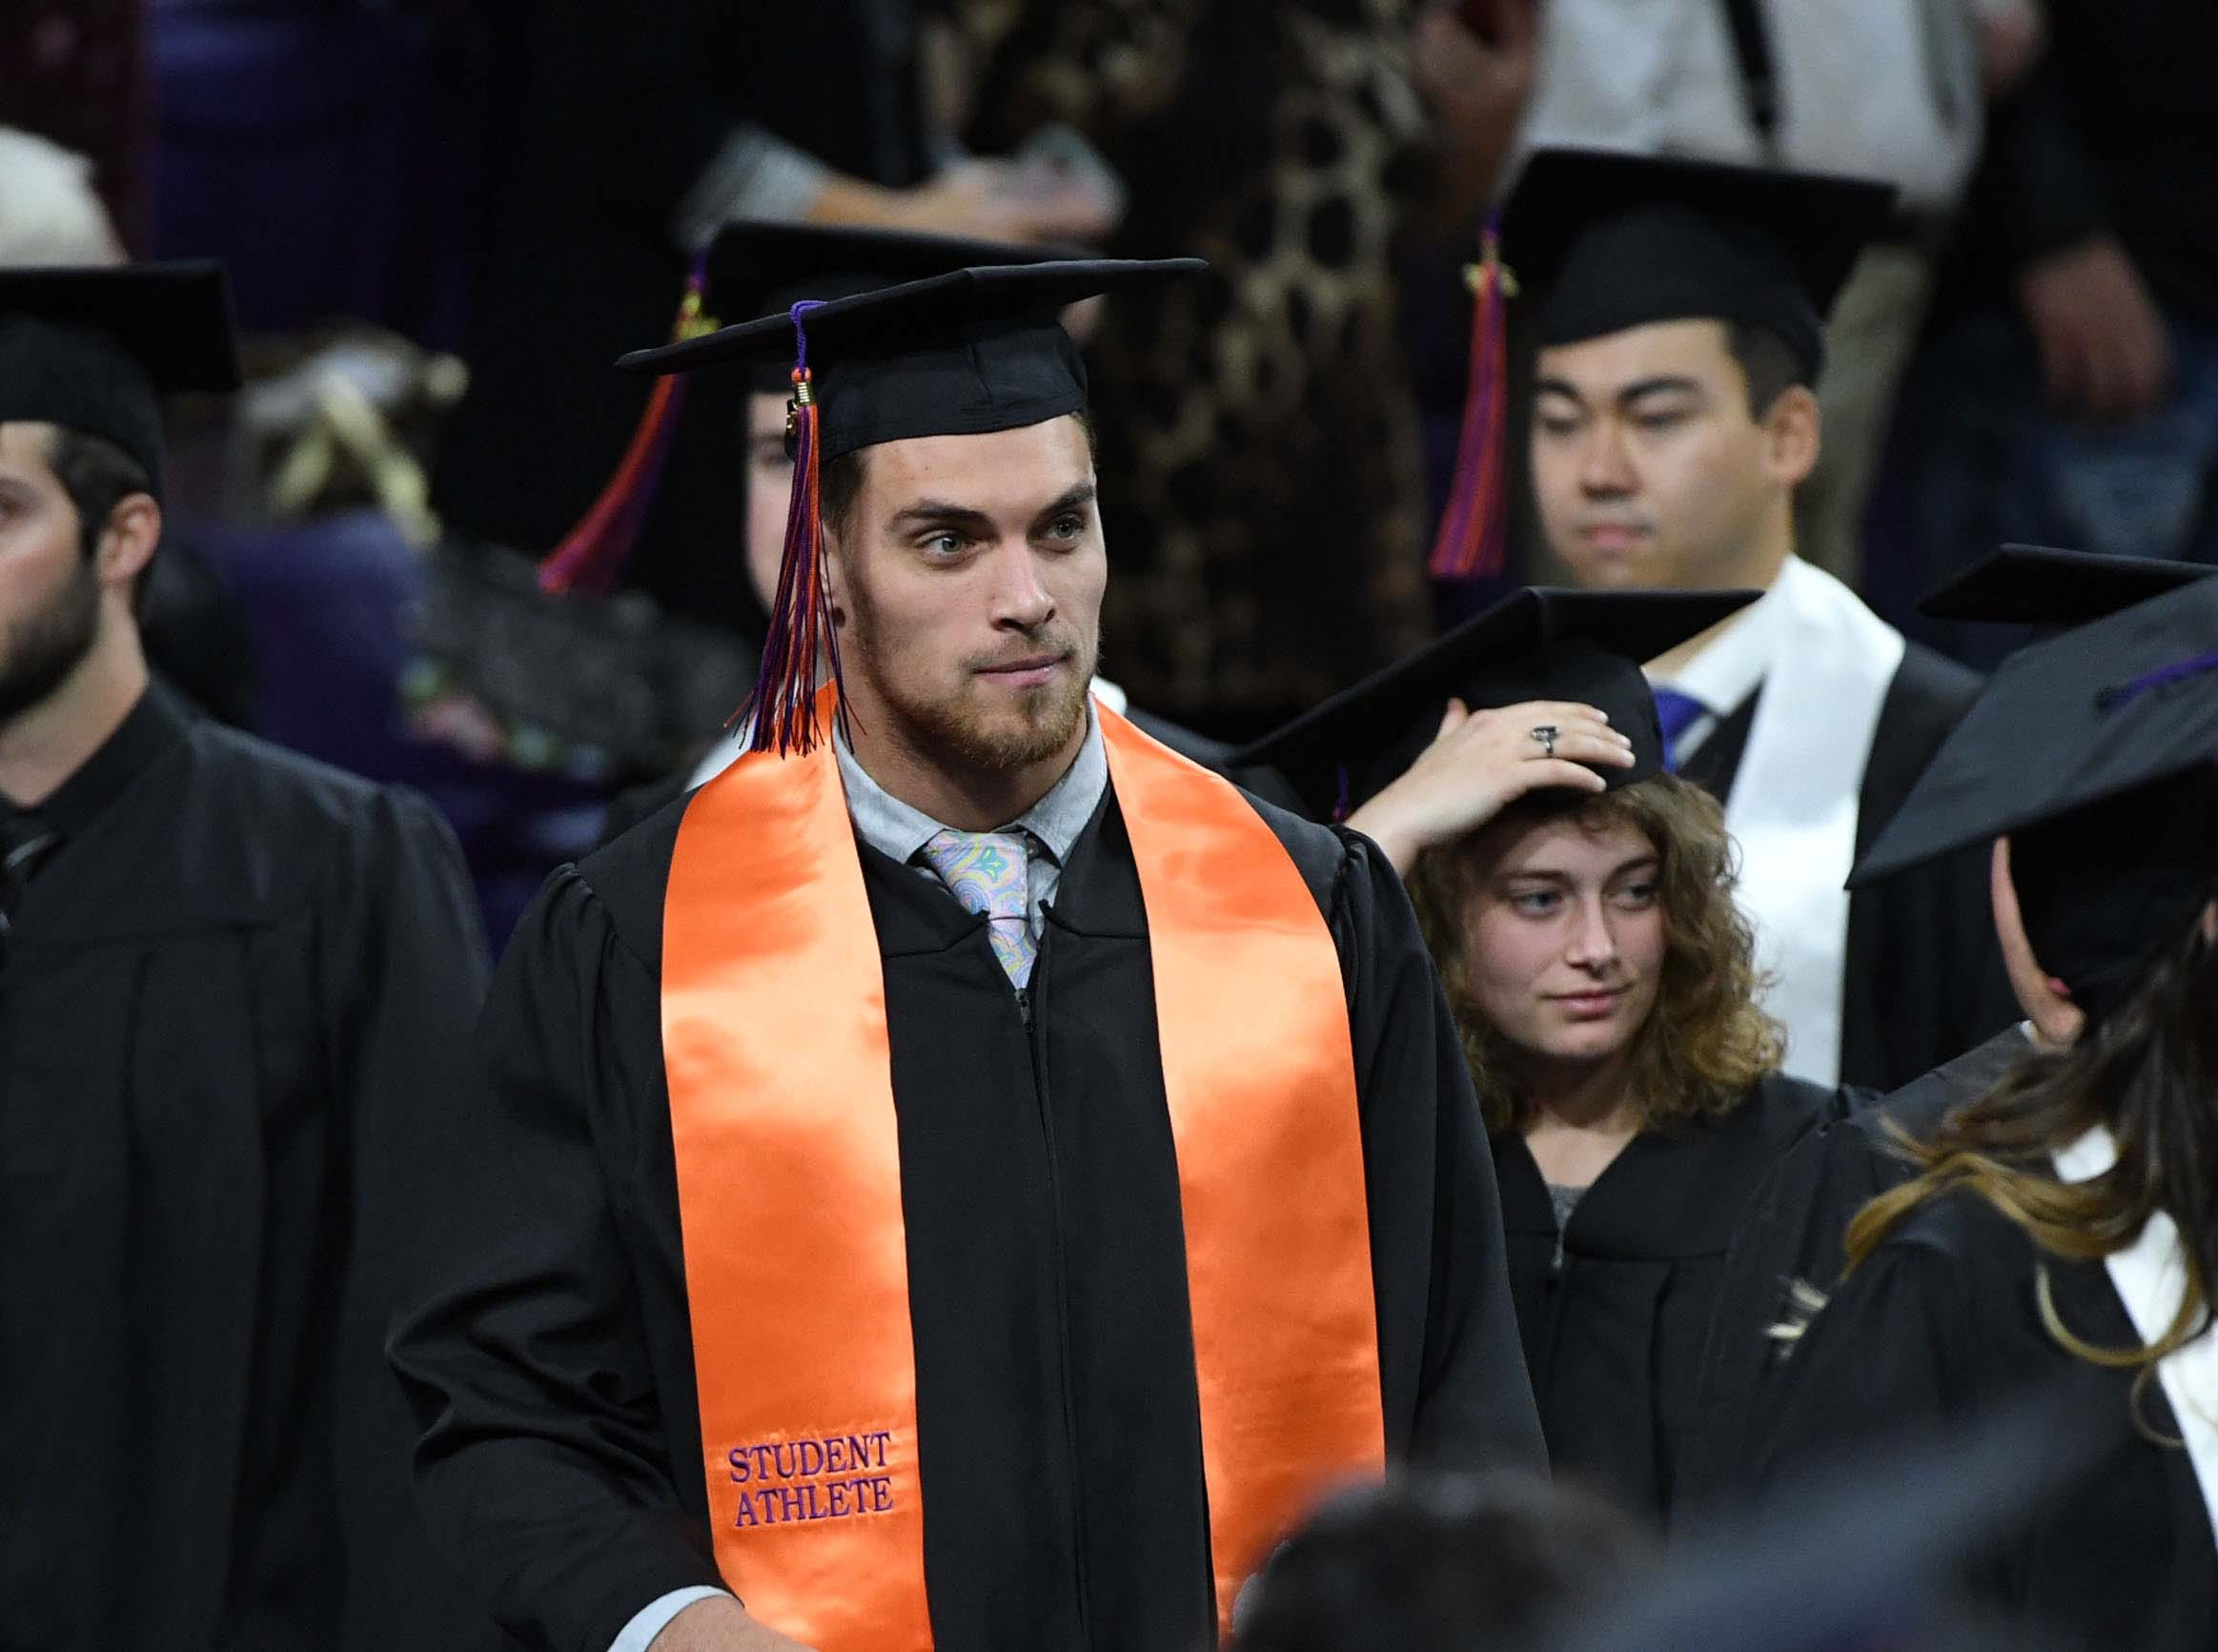 Clemson football defensive back Tanner Muse, a parks, recreation & tourism management major, walks in for the Clemson University graduation ceremony Thursday morning in Littlejohn Coliseum in Clemson.